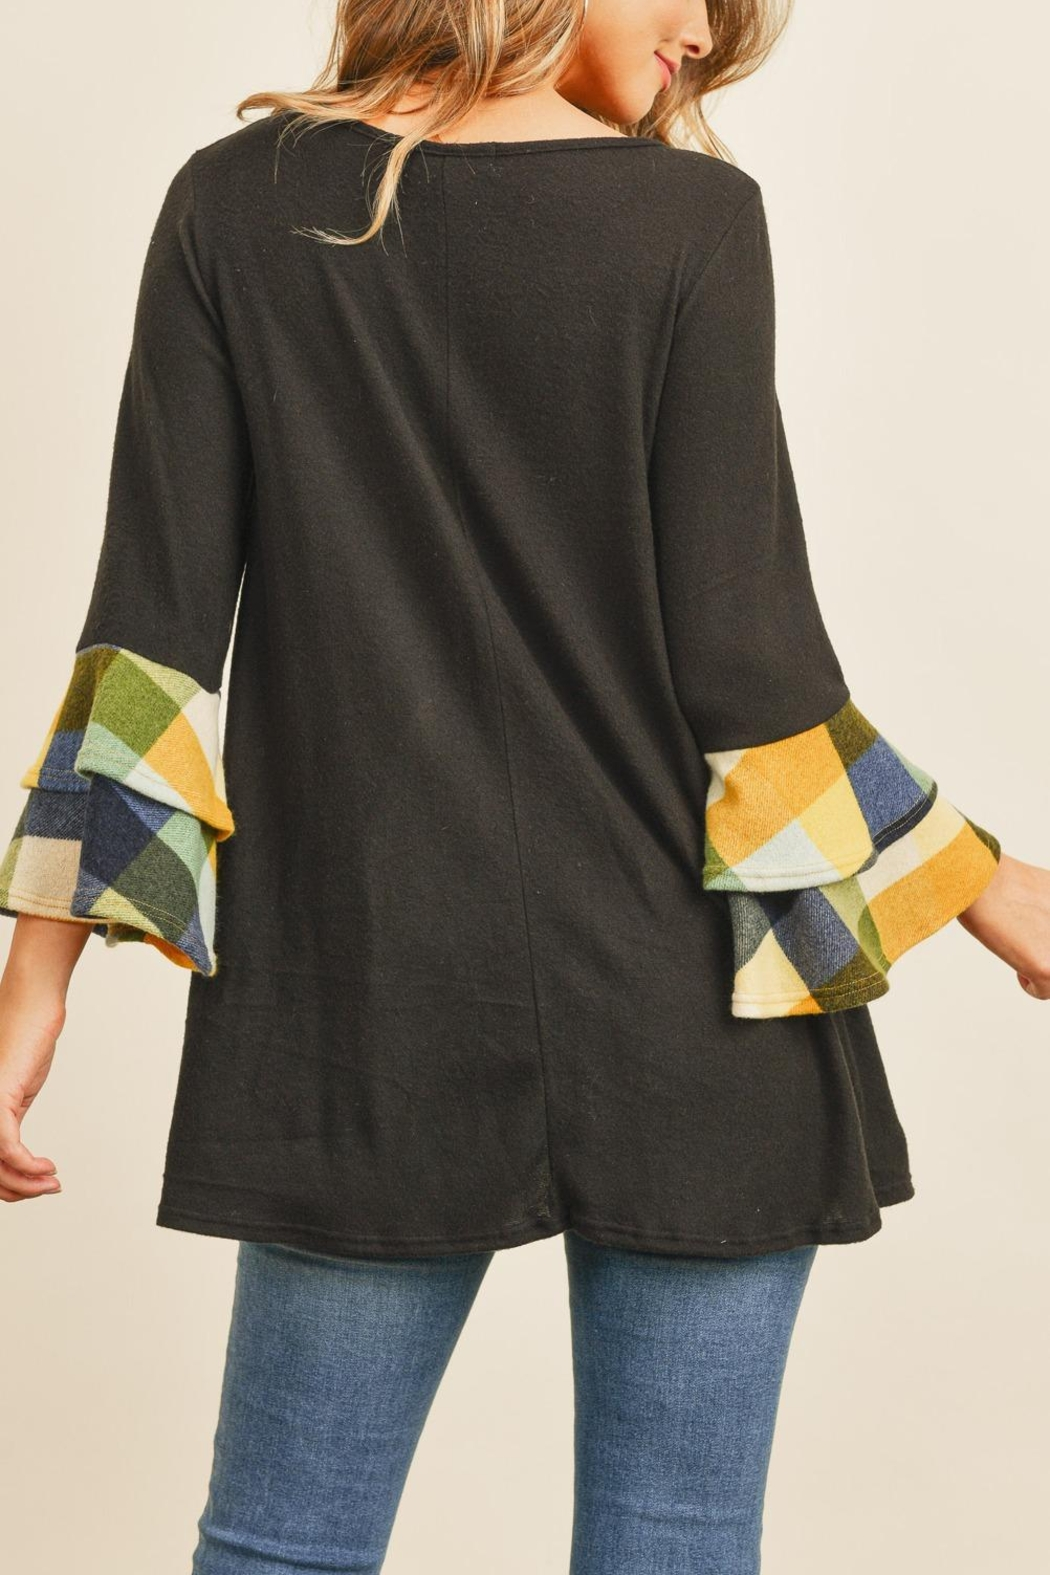 Riah Fashion Plaid-Layered-Bell-Sleeve-Boat-Neck-Solid-Top - Front Full Image